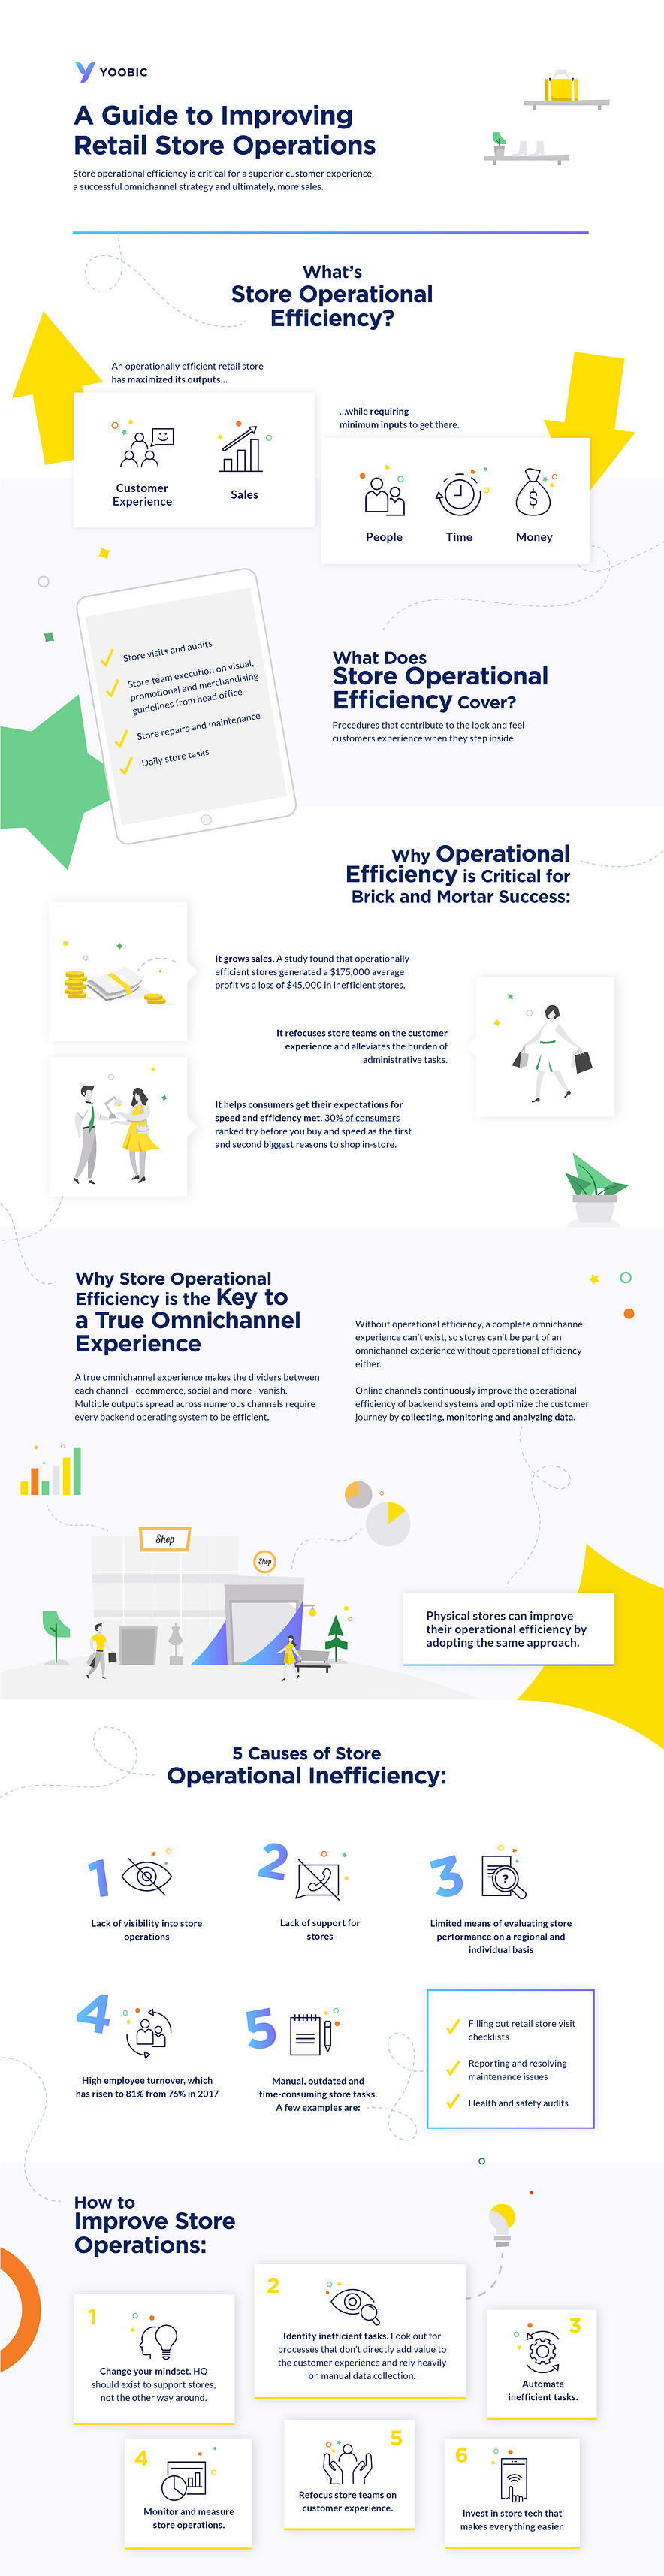 Infographic-A Guide to Improving Retail Store Operations-yoobic